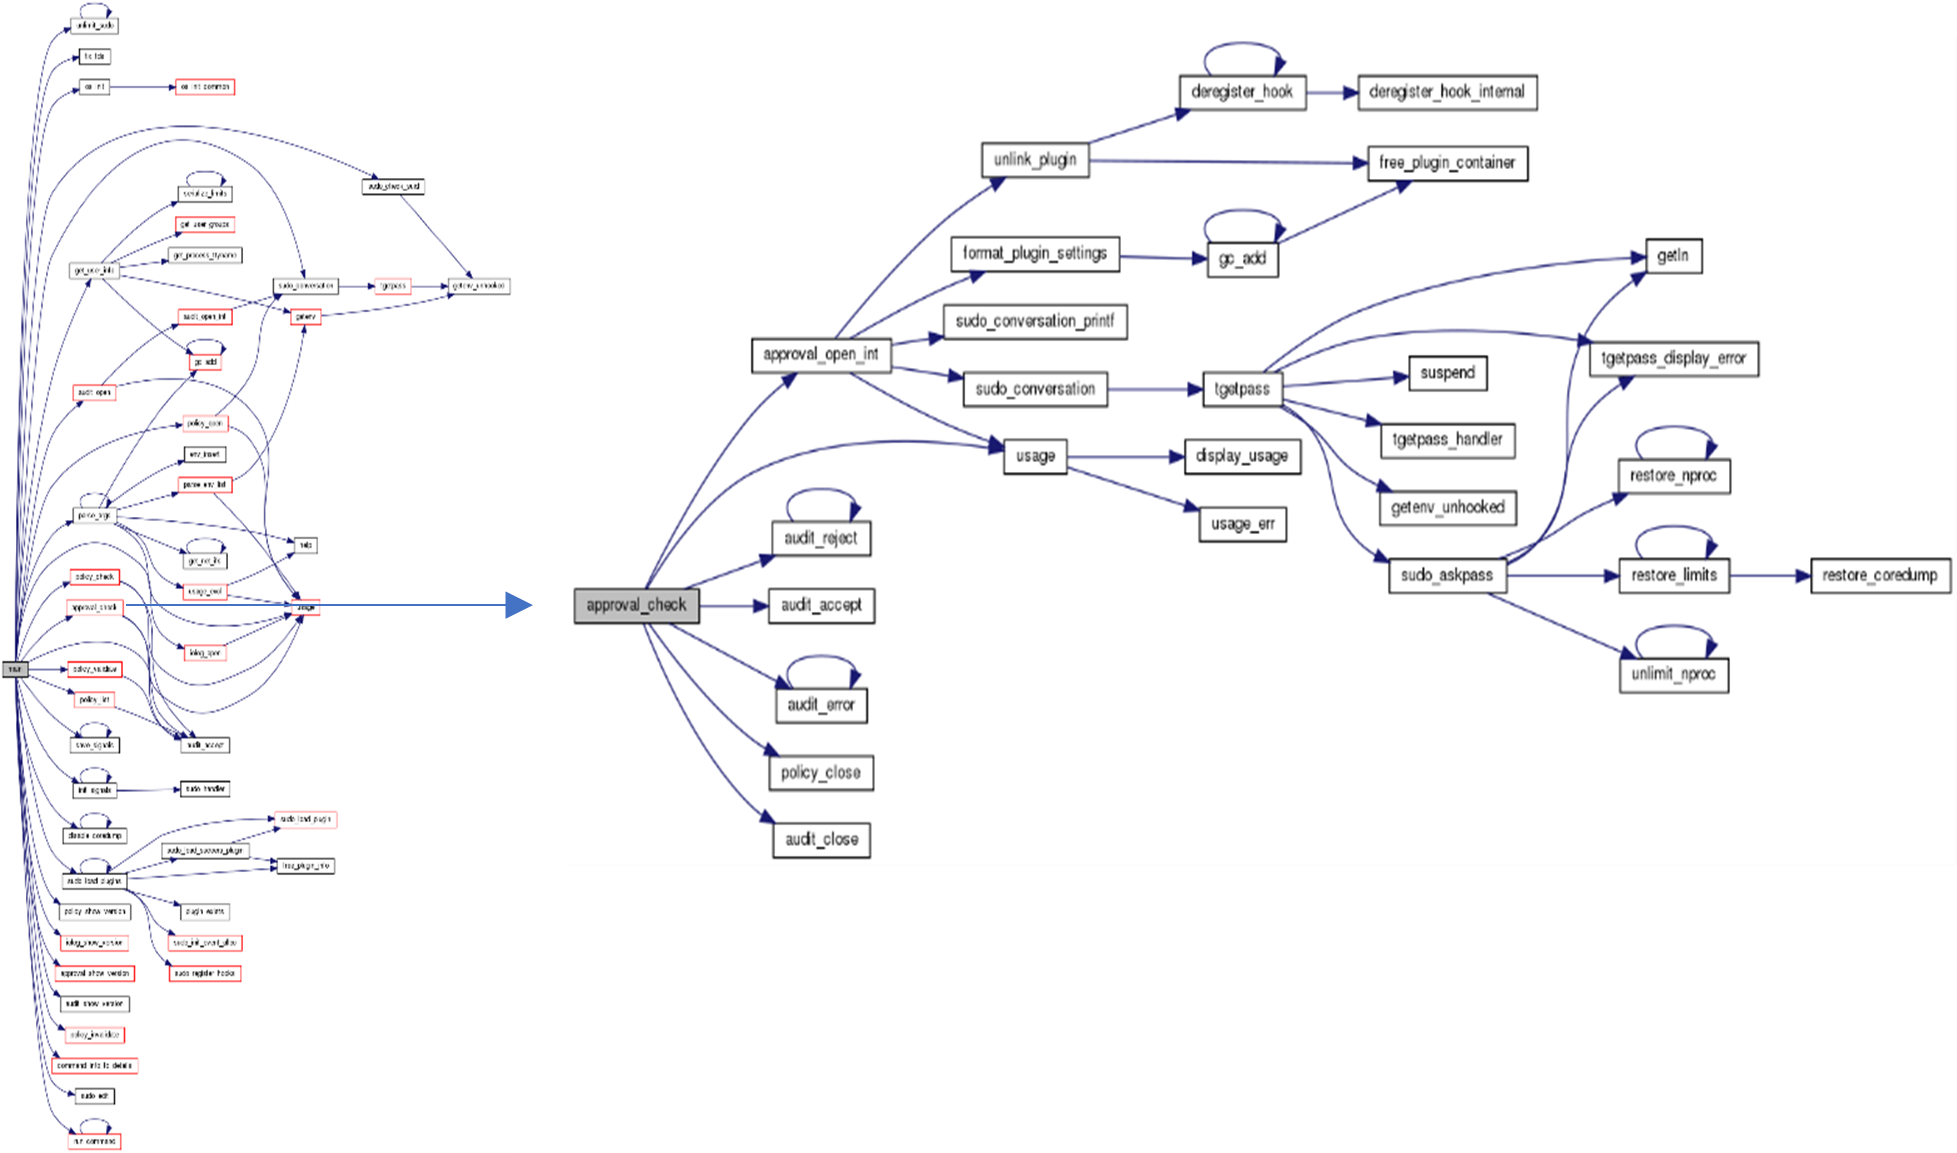 Doxygen call graph for sudo Linux utility